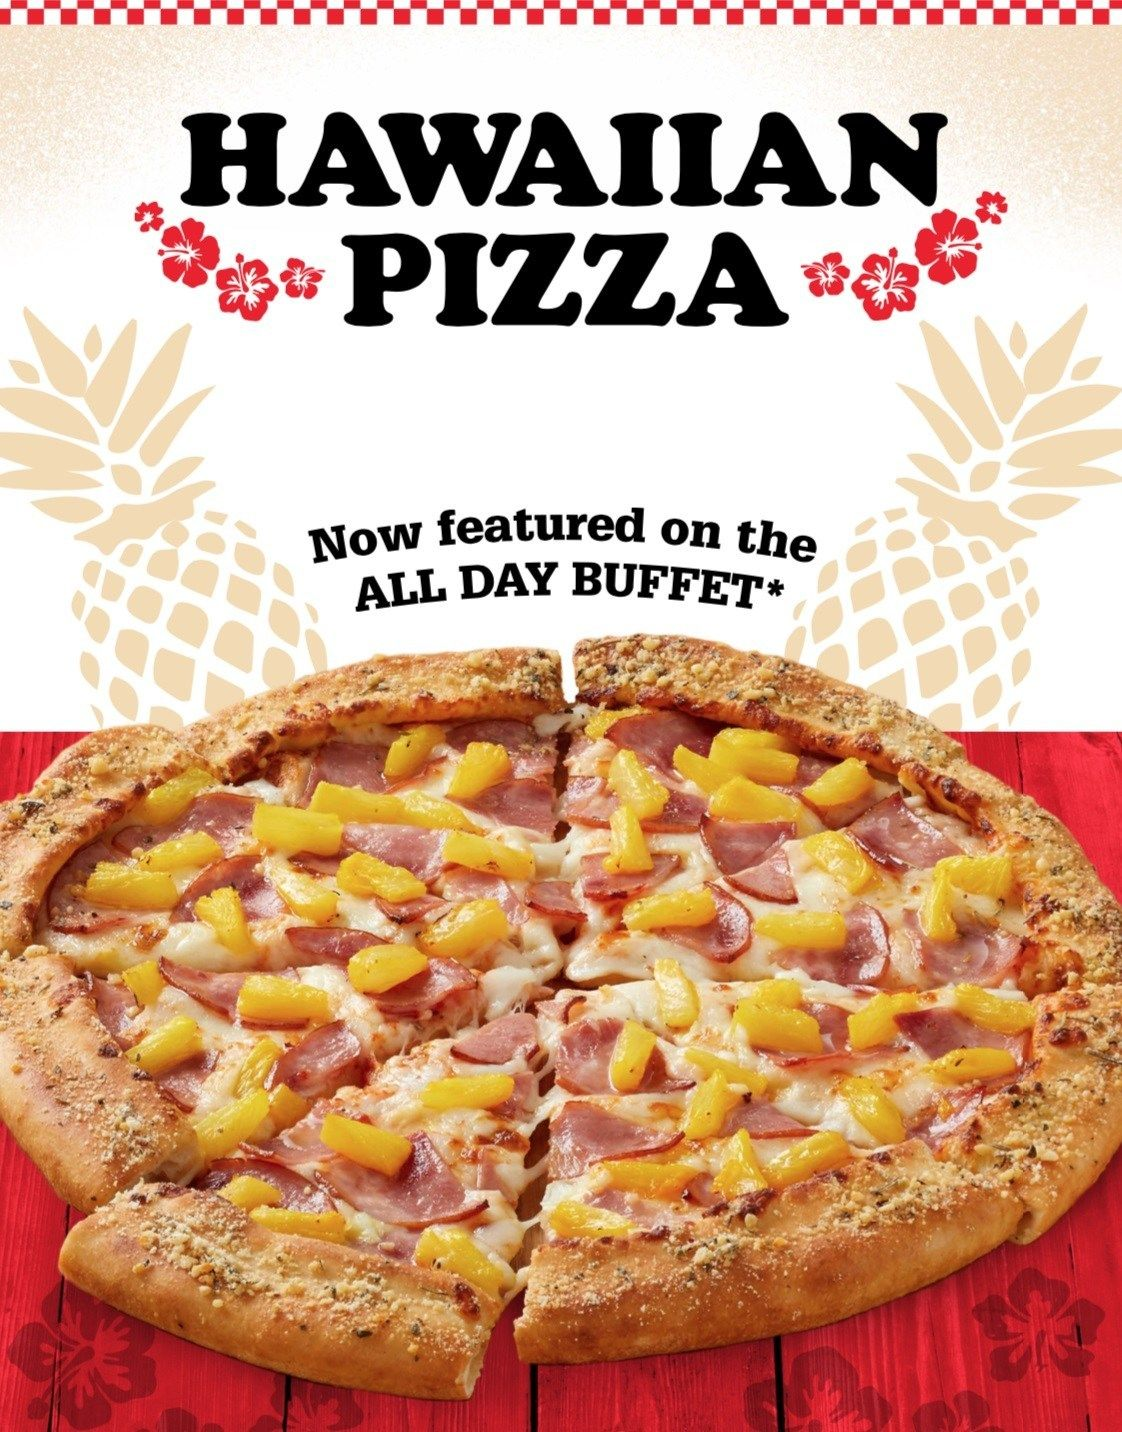 Say Aloha to Hawaiian Pizza at Pizza Inn